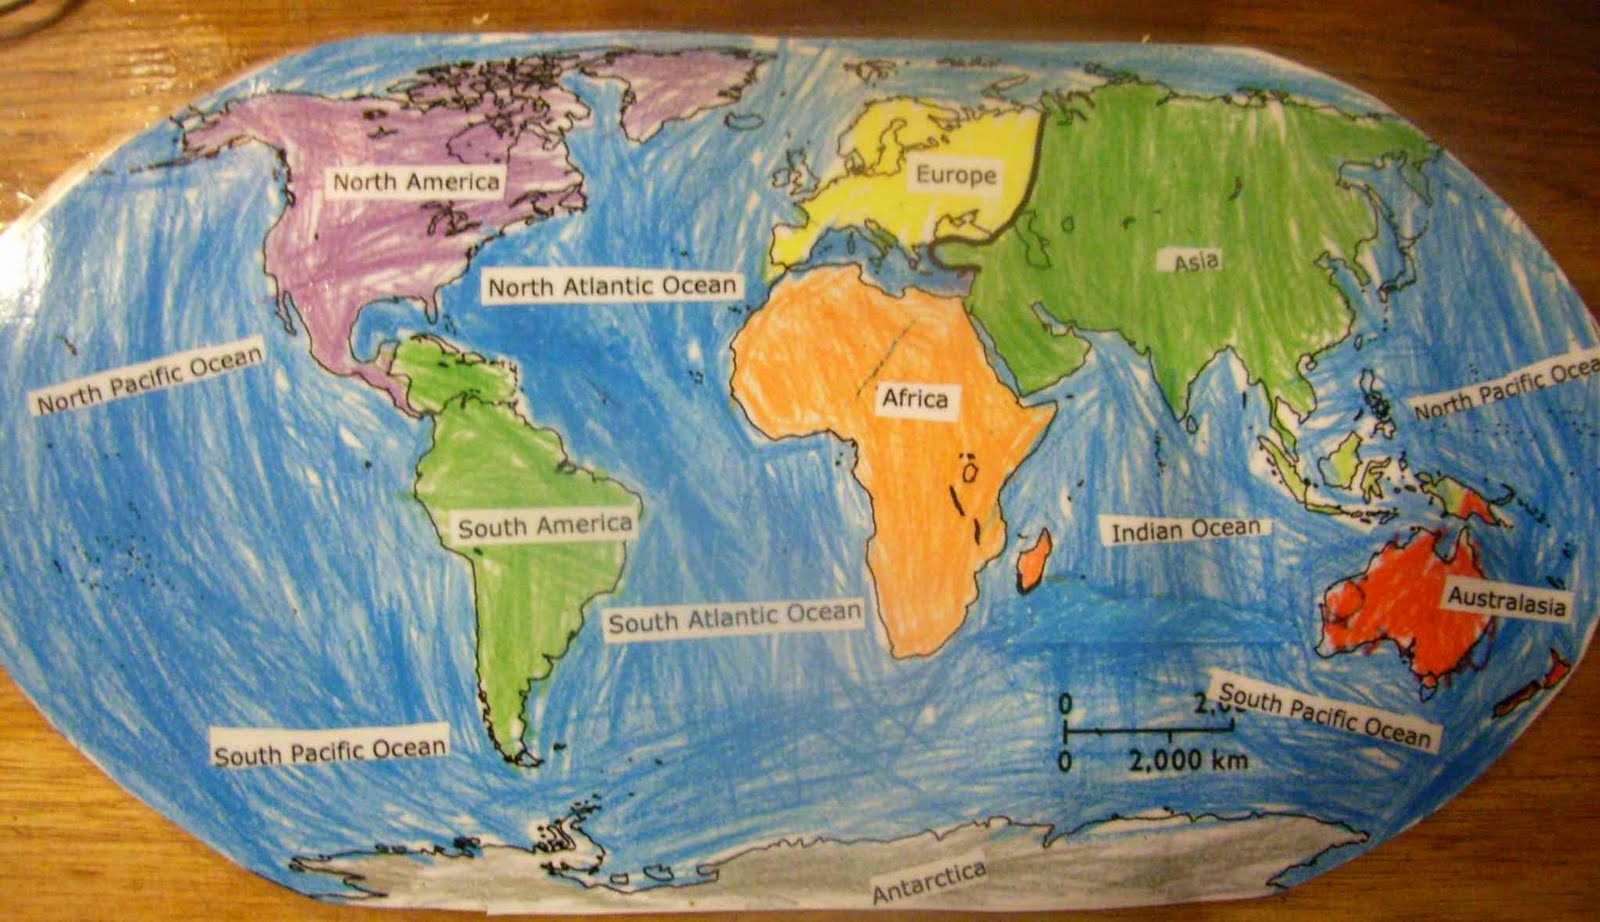 Room 2 2010 june 2010 friday with ms gain jaspers world map showing the continents and major oceans gumiabroncs Choice Image